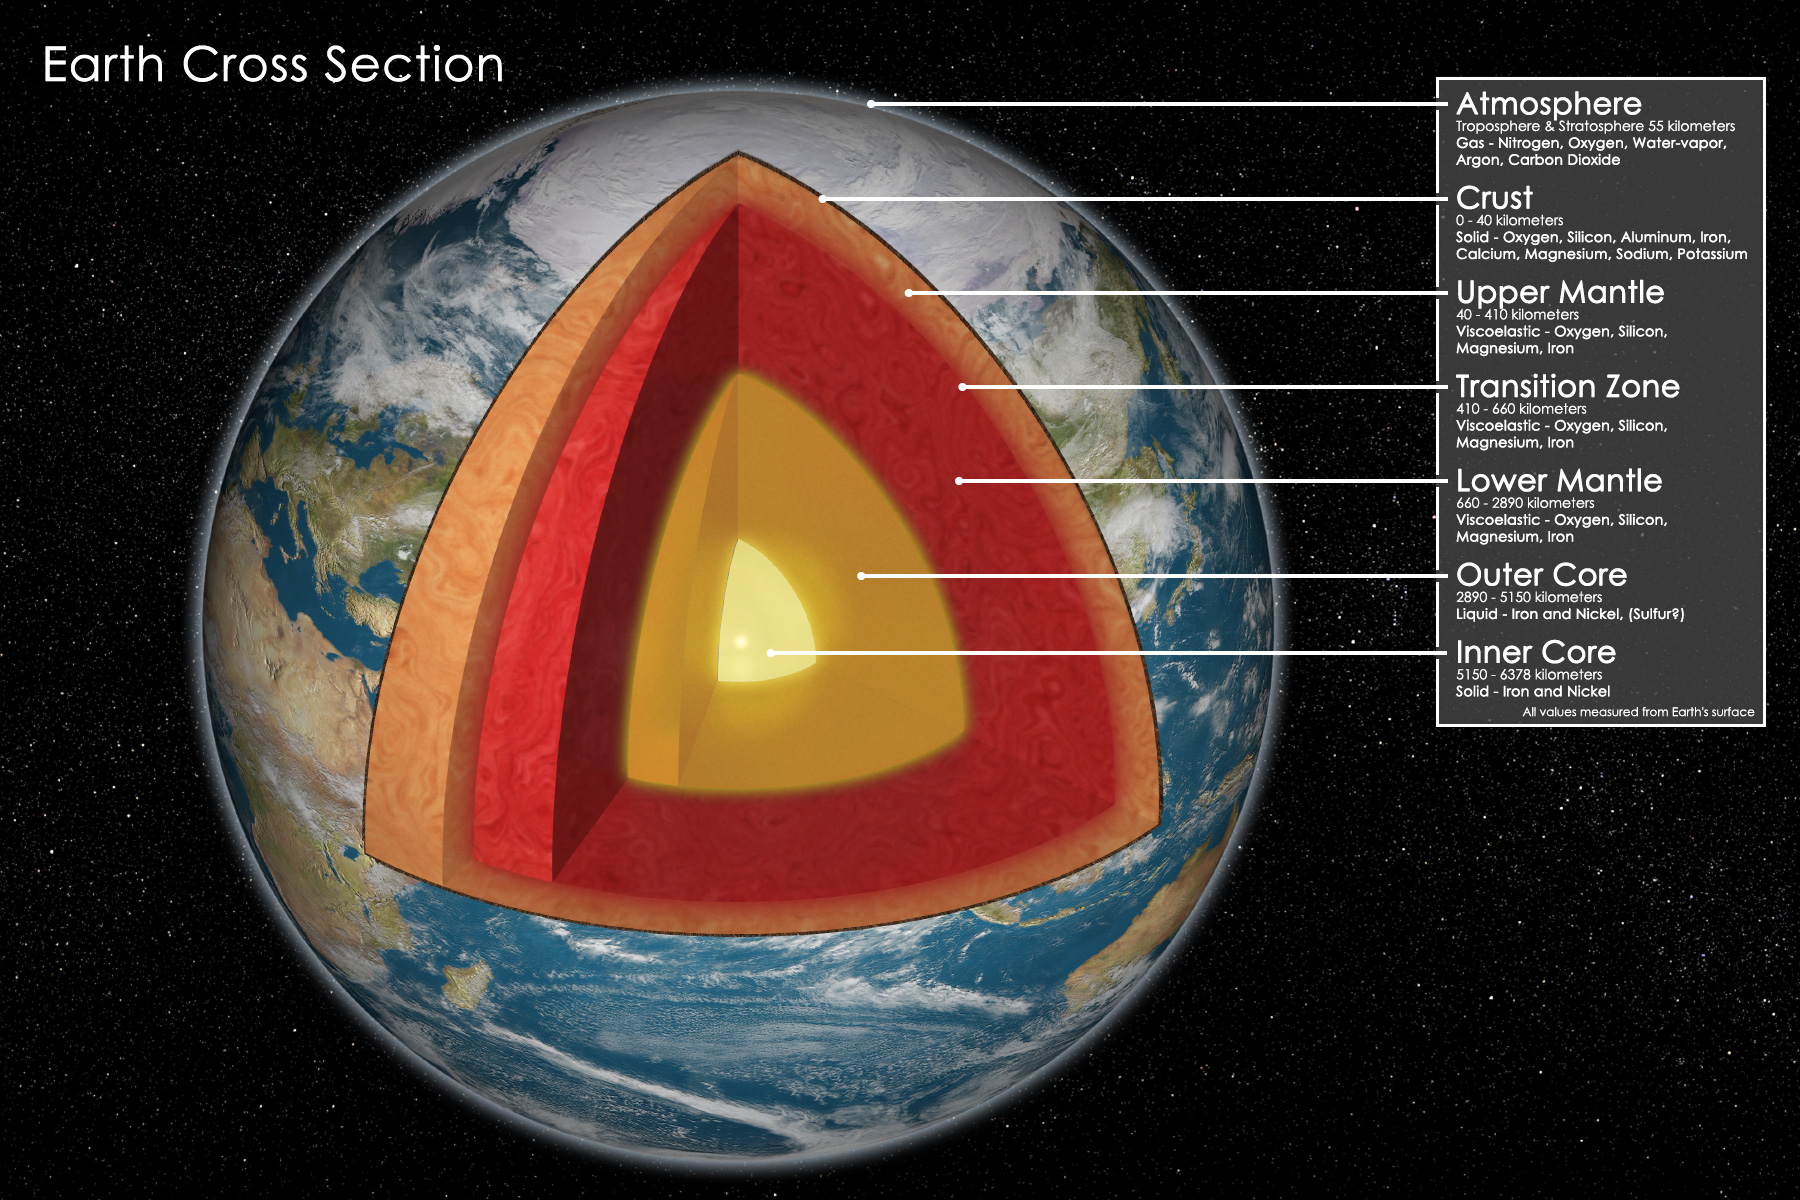 Earth Cross Section by Adam Dorman - Digital Artist